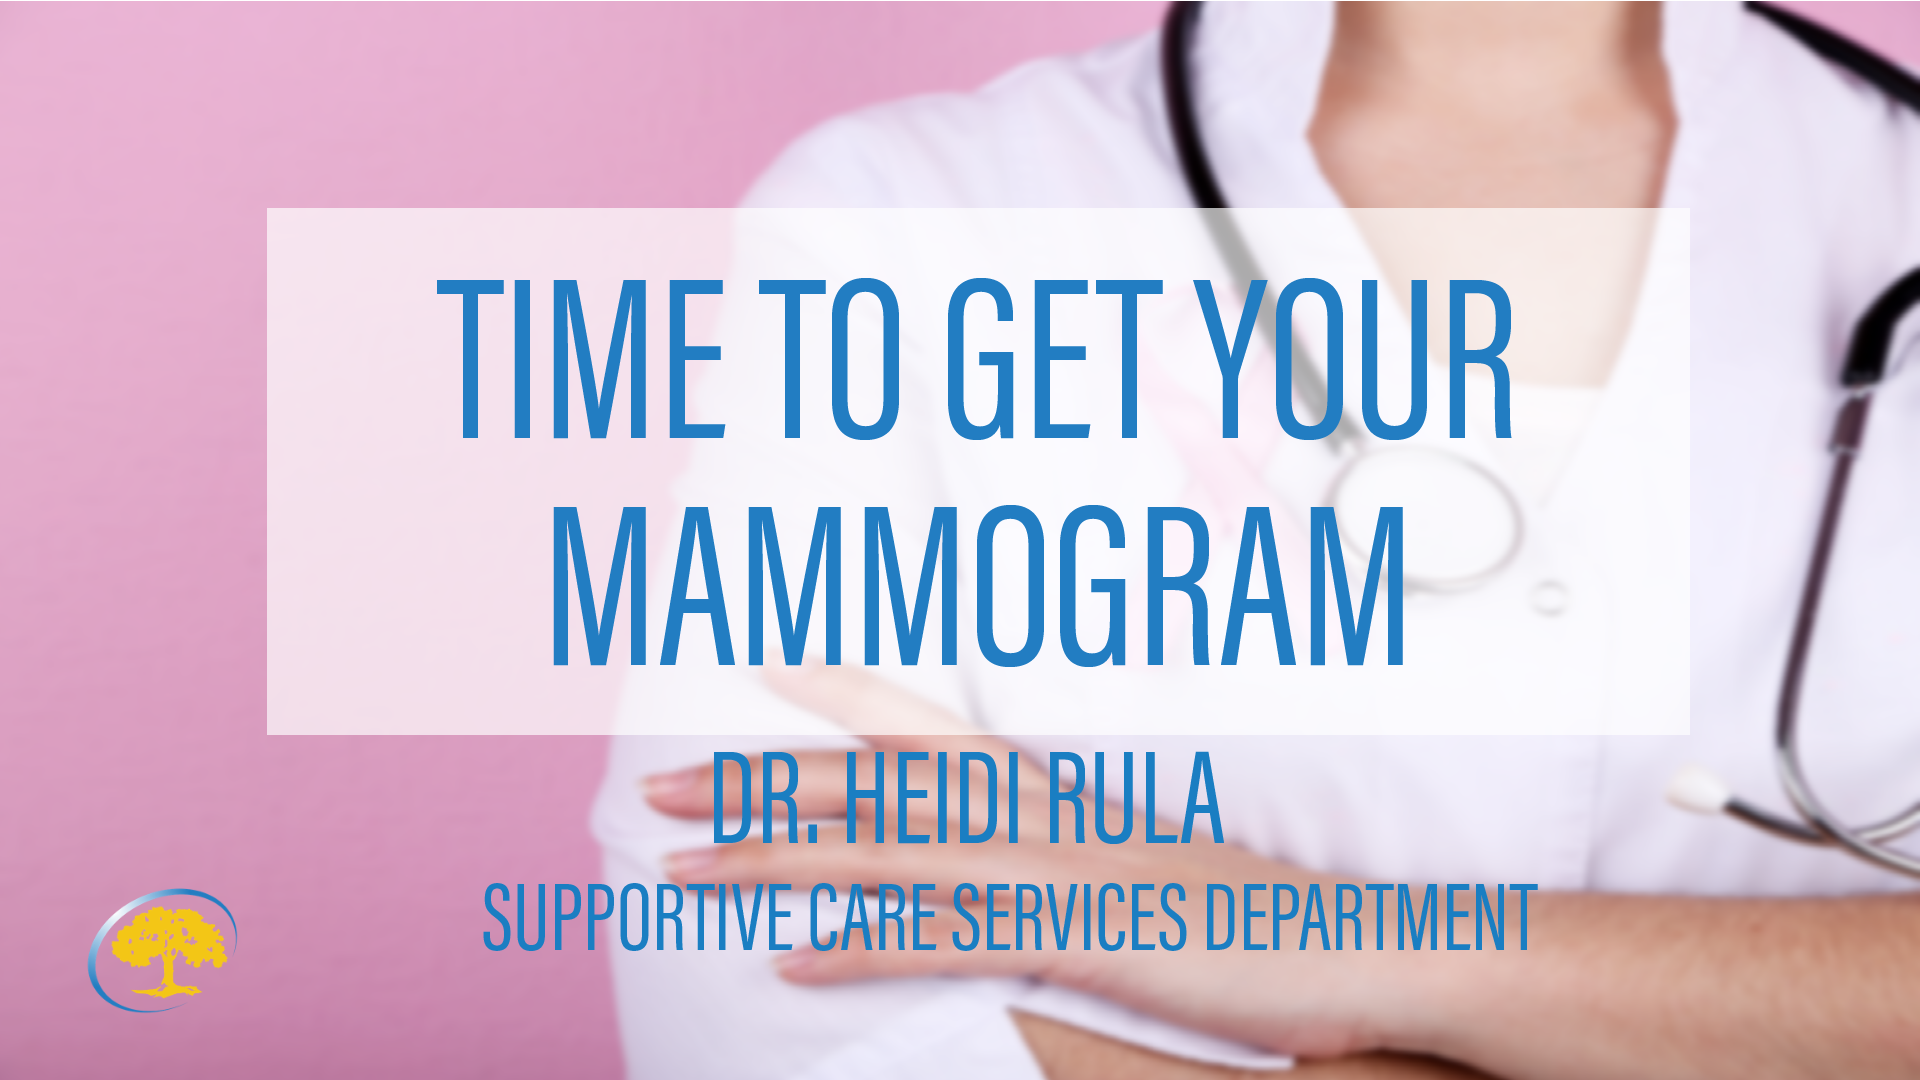 Time to Get Your Mammogram